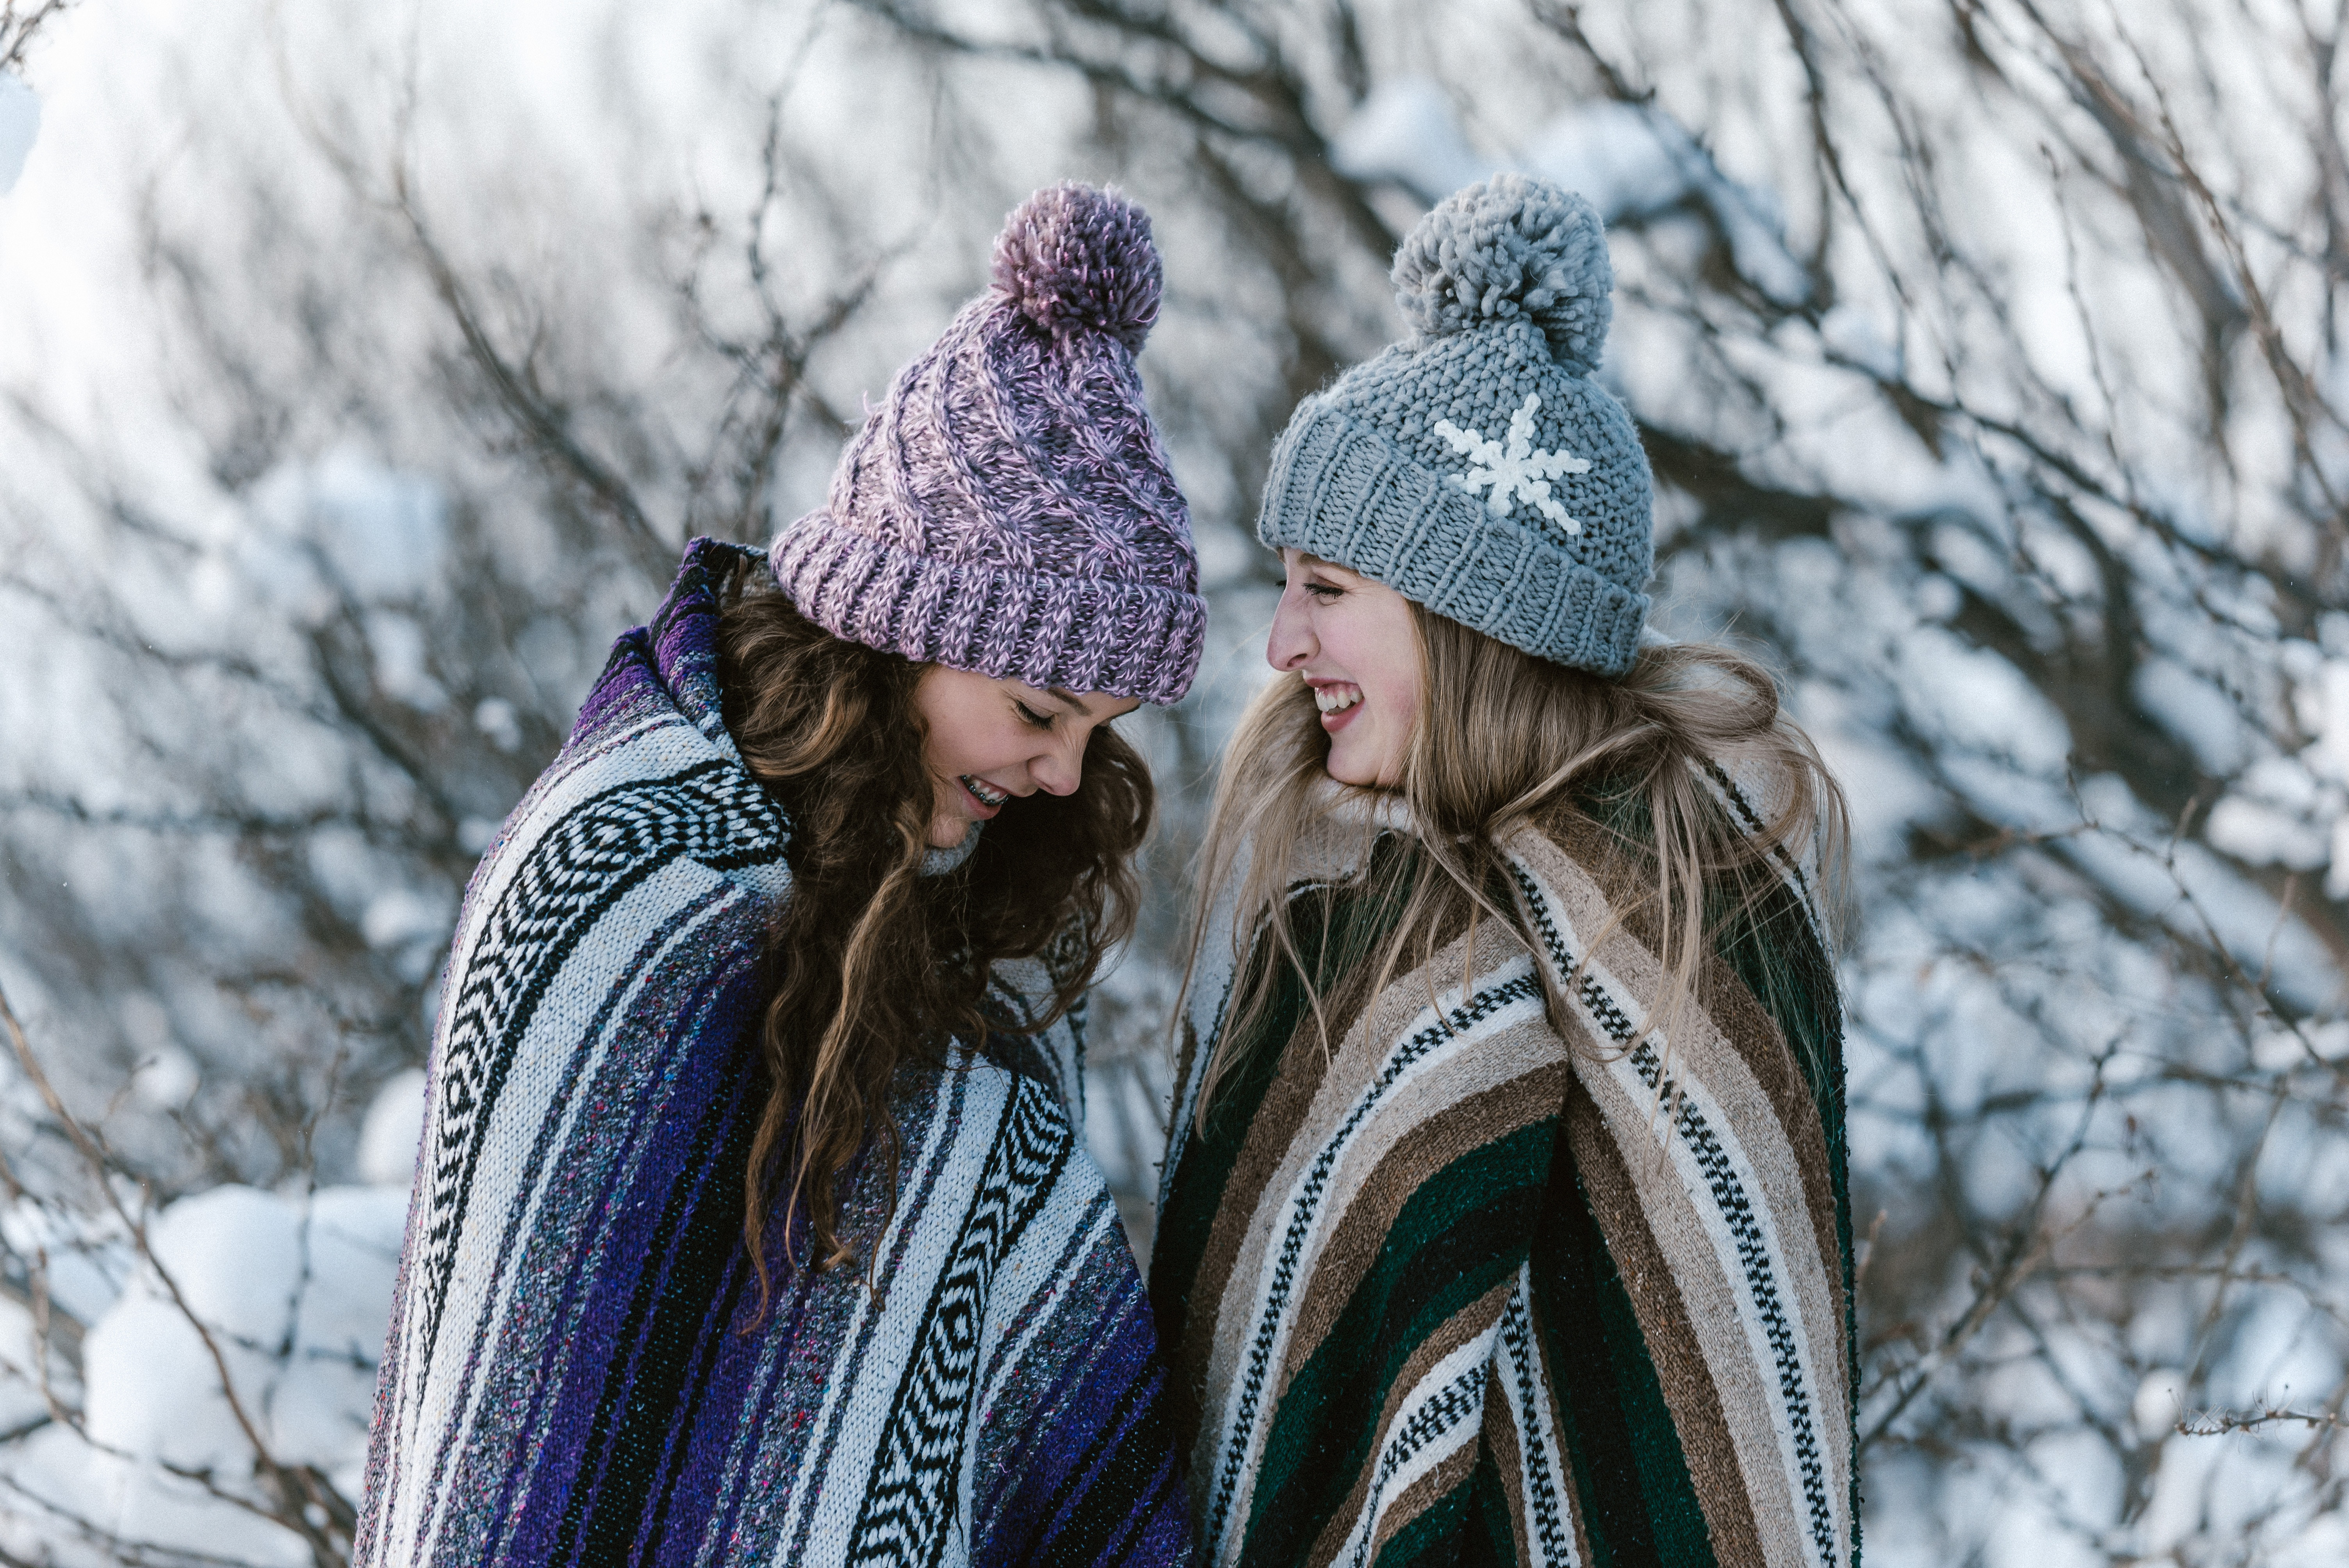 Reasons to love winter | Photo by Genessa Panainte on Unsplash